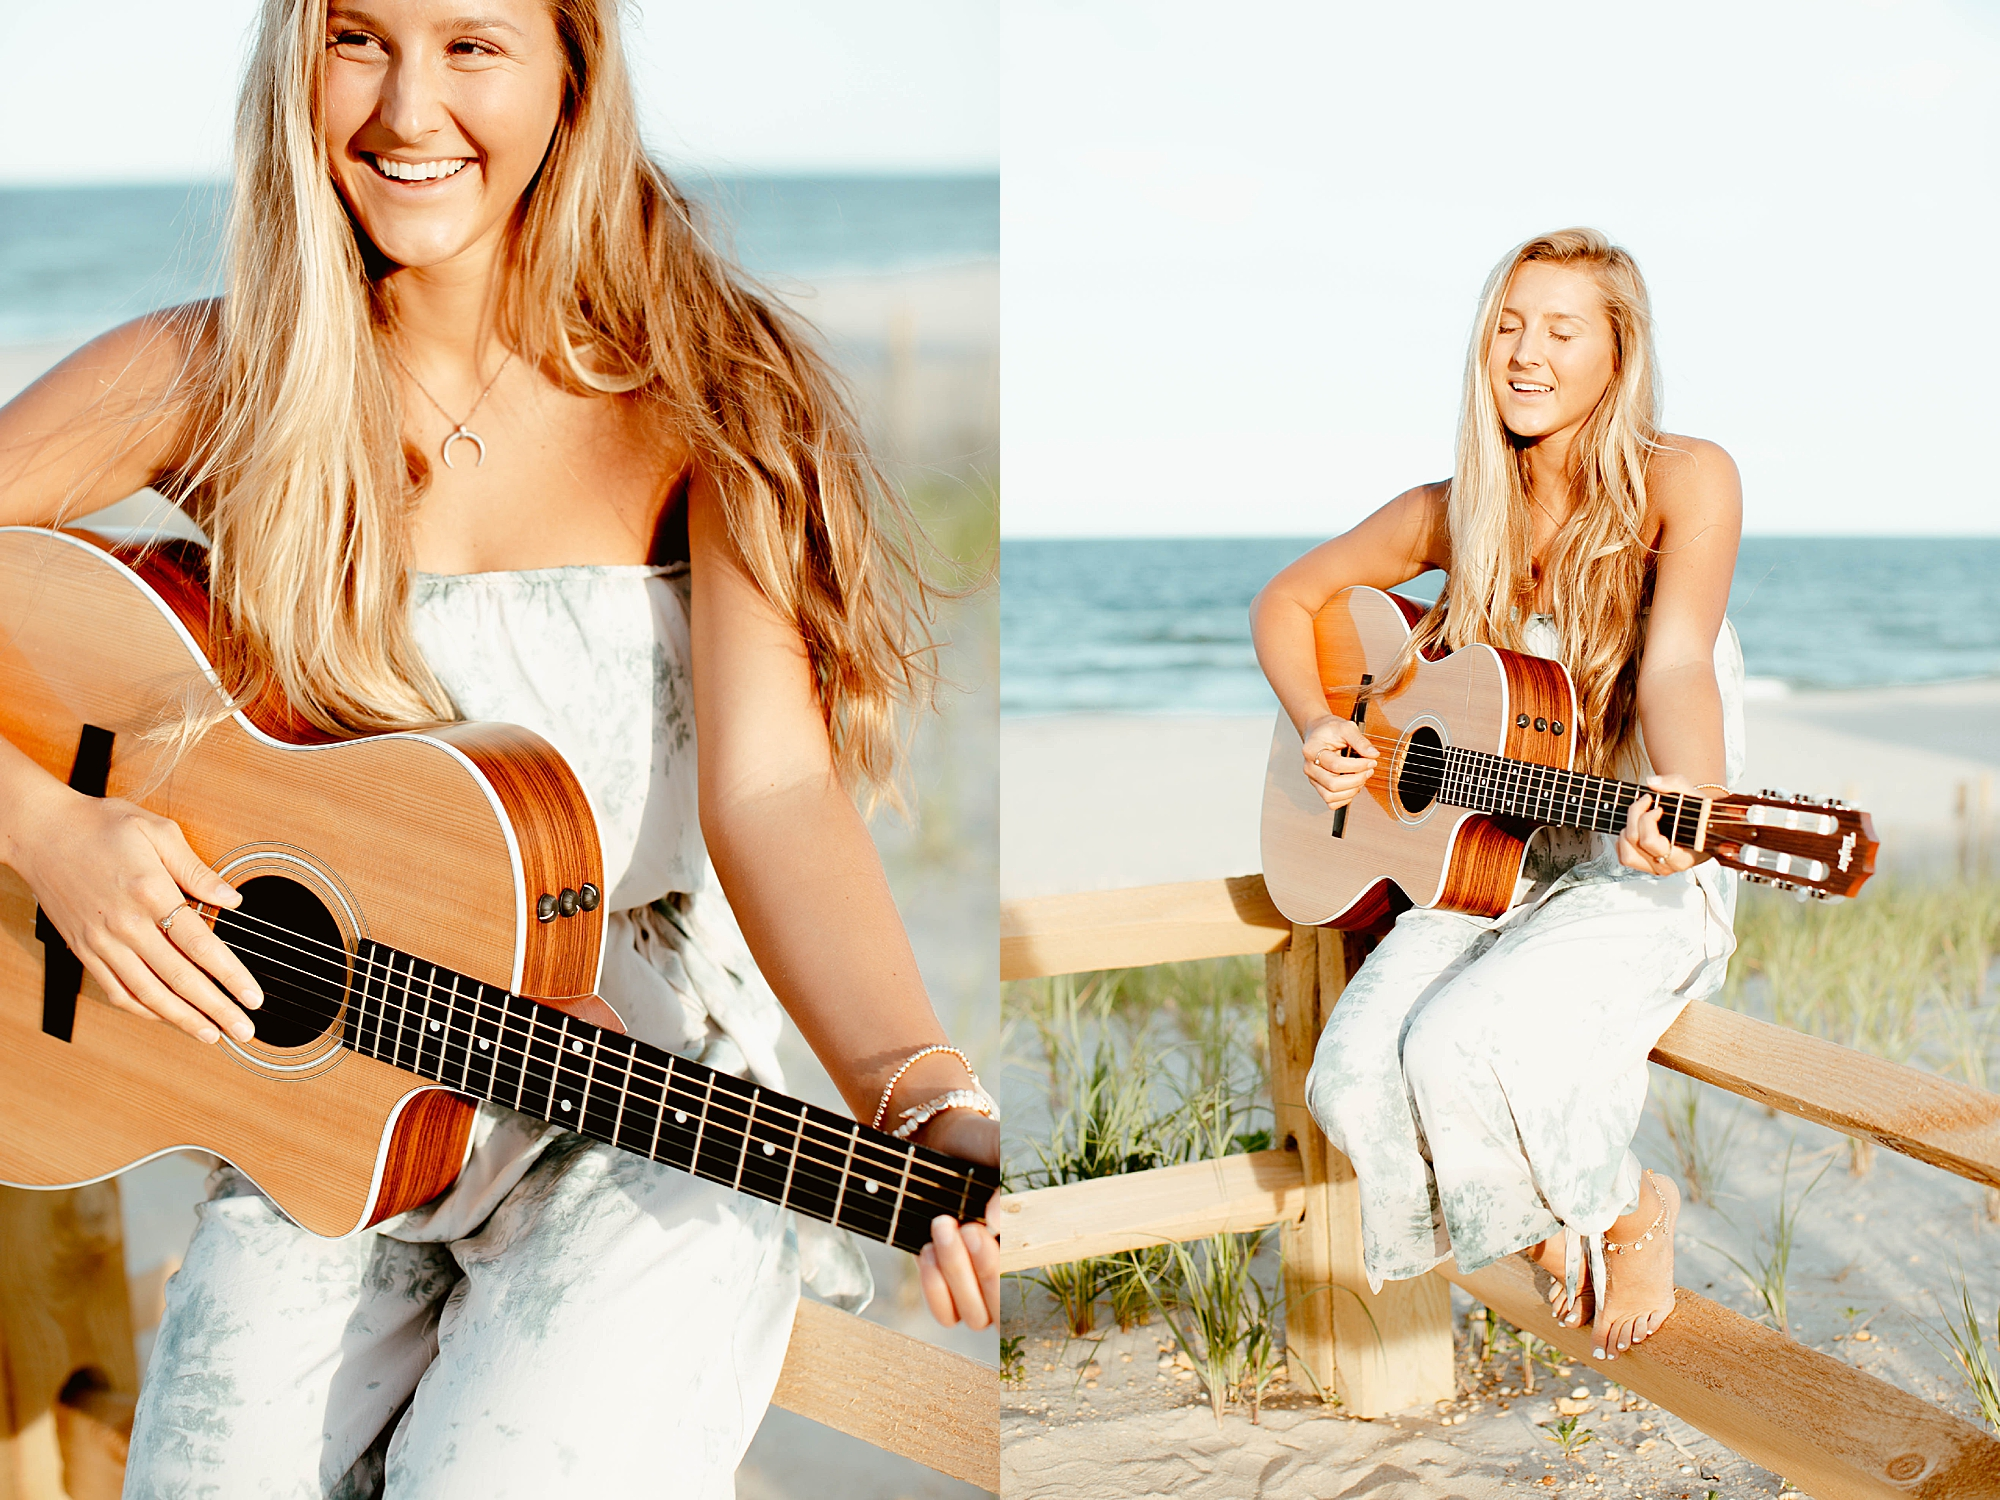 Natural and Bright Seaside Park New Jersey Boho Lifestlyle Beach Portrait Photography by Kelee Bovelle_0020.jpg